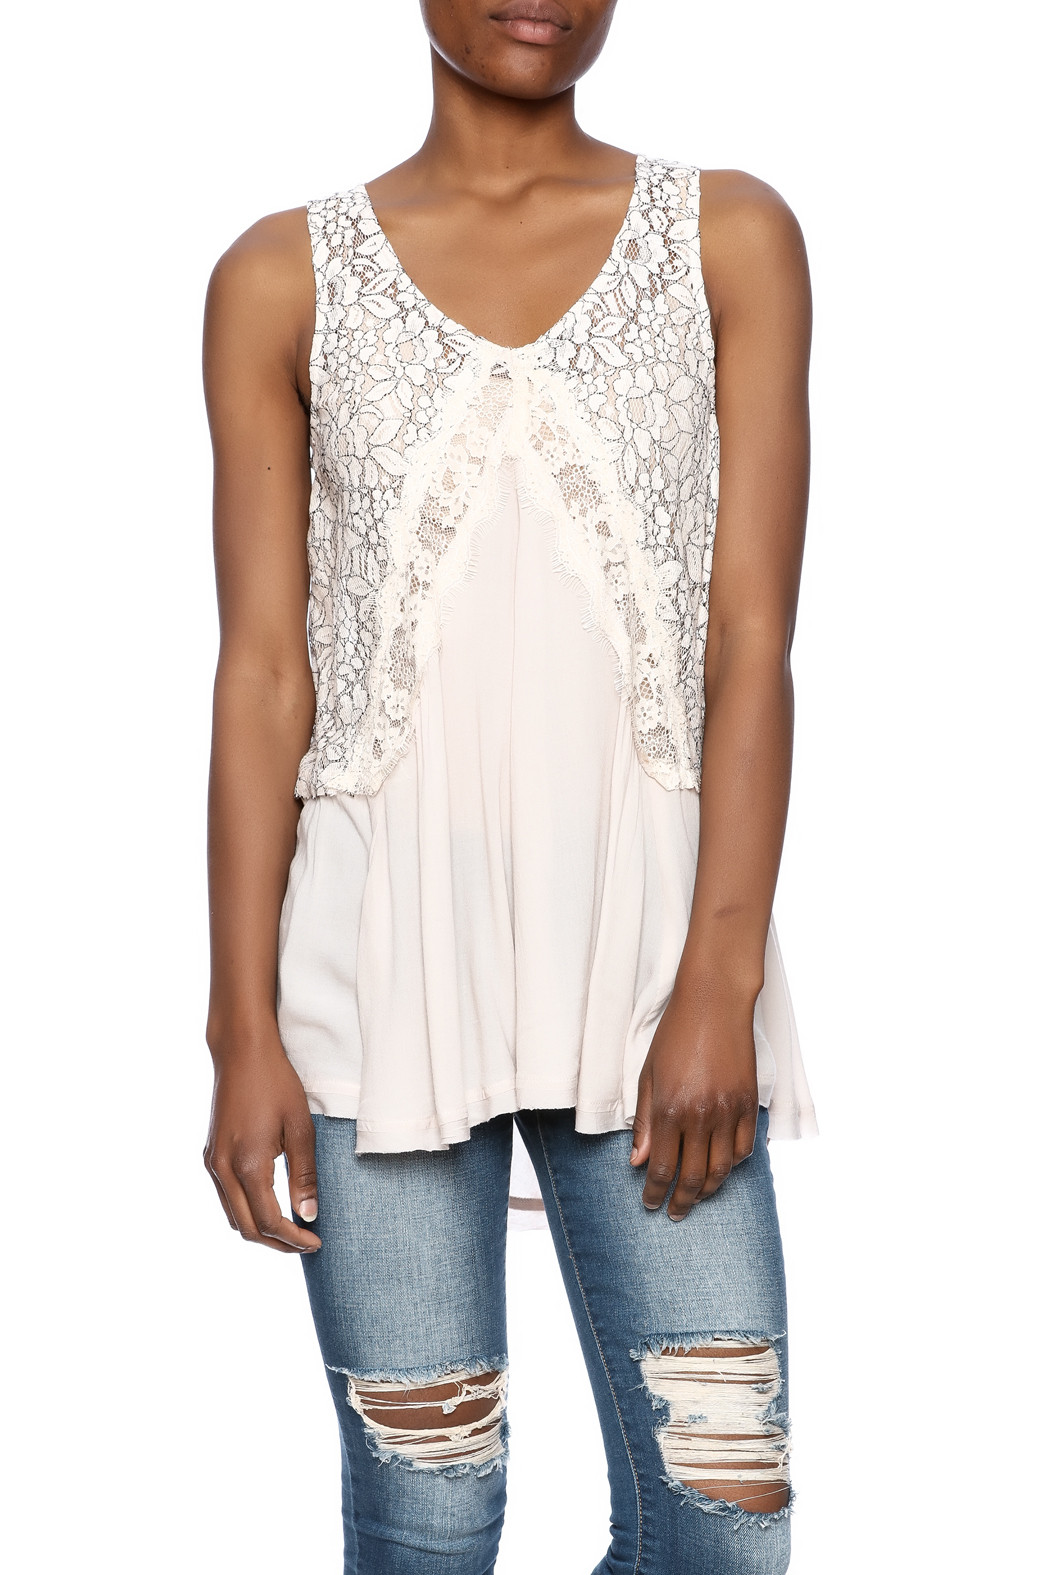 Crochet Lace Tank top Elegant Mystree Crochet Lace Tank From Indiana by Posh Vincennes Of Incredible 41 Images Crochet Lace Tank top